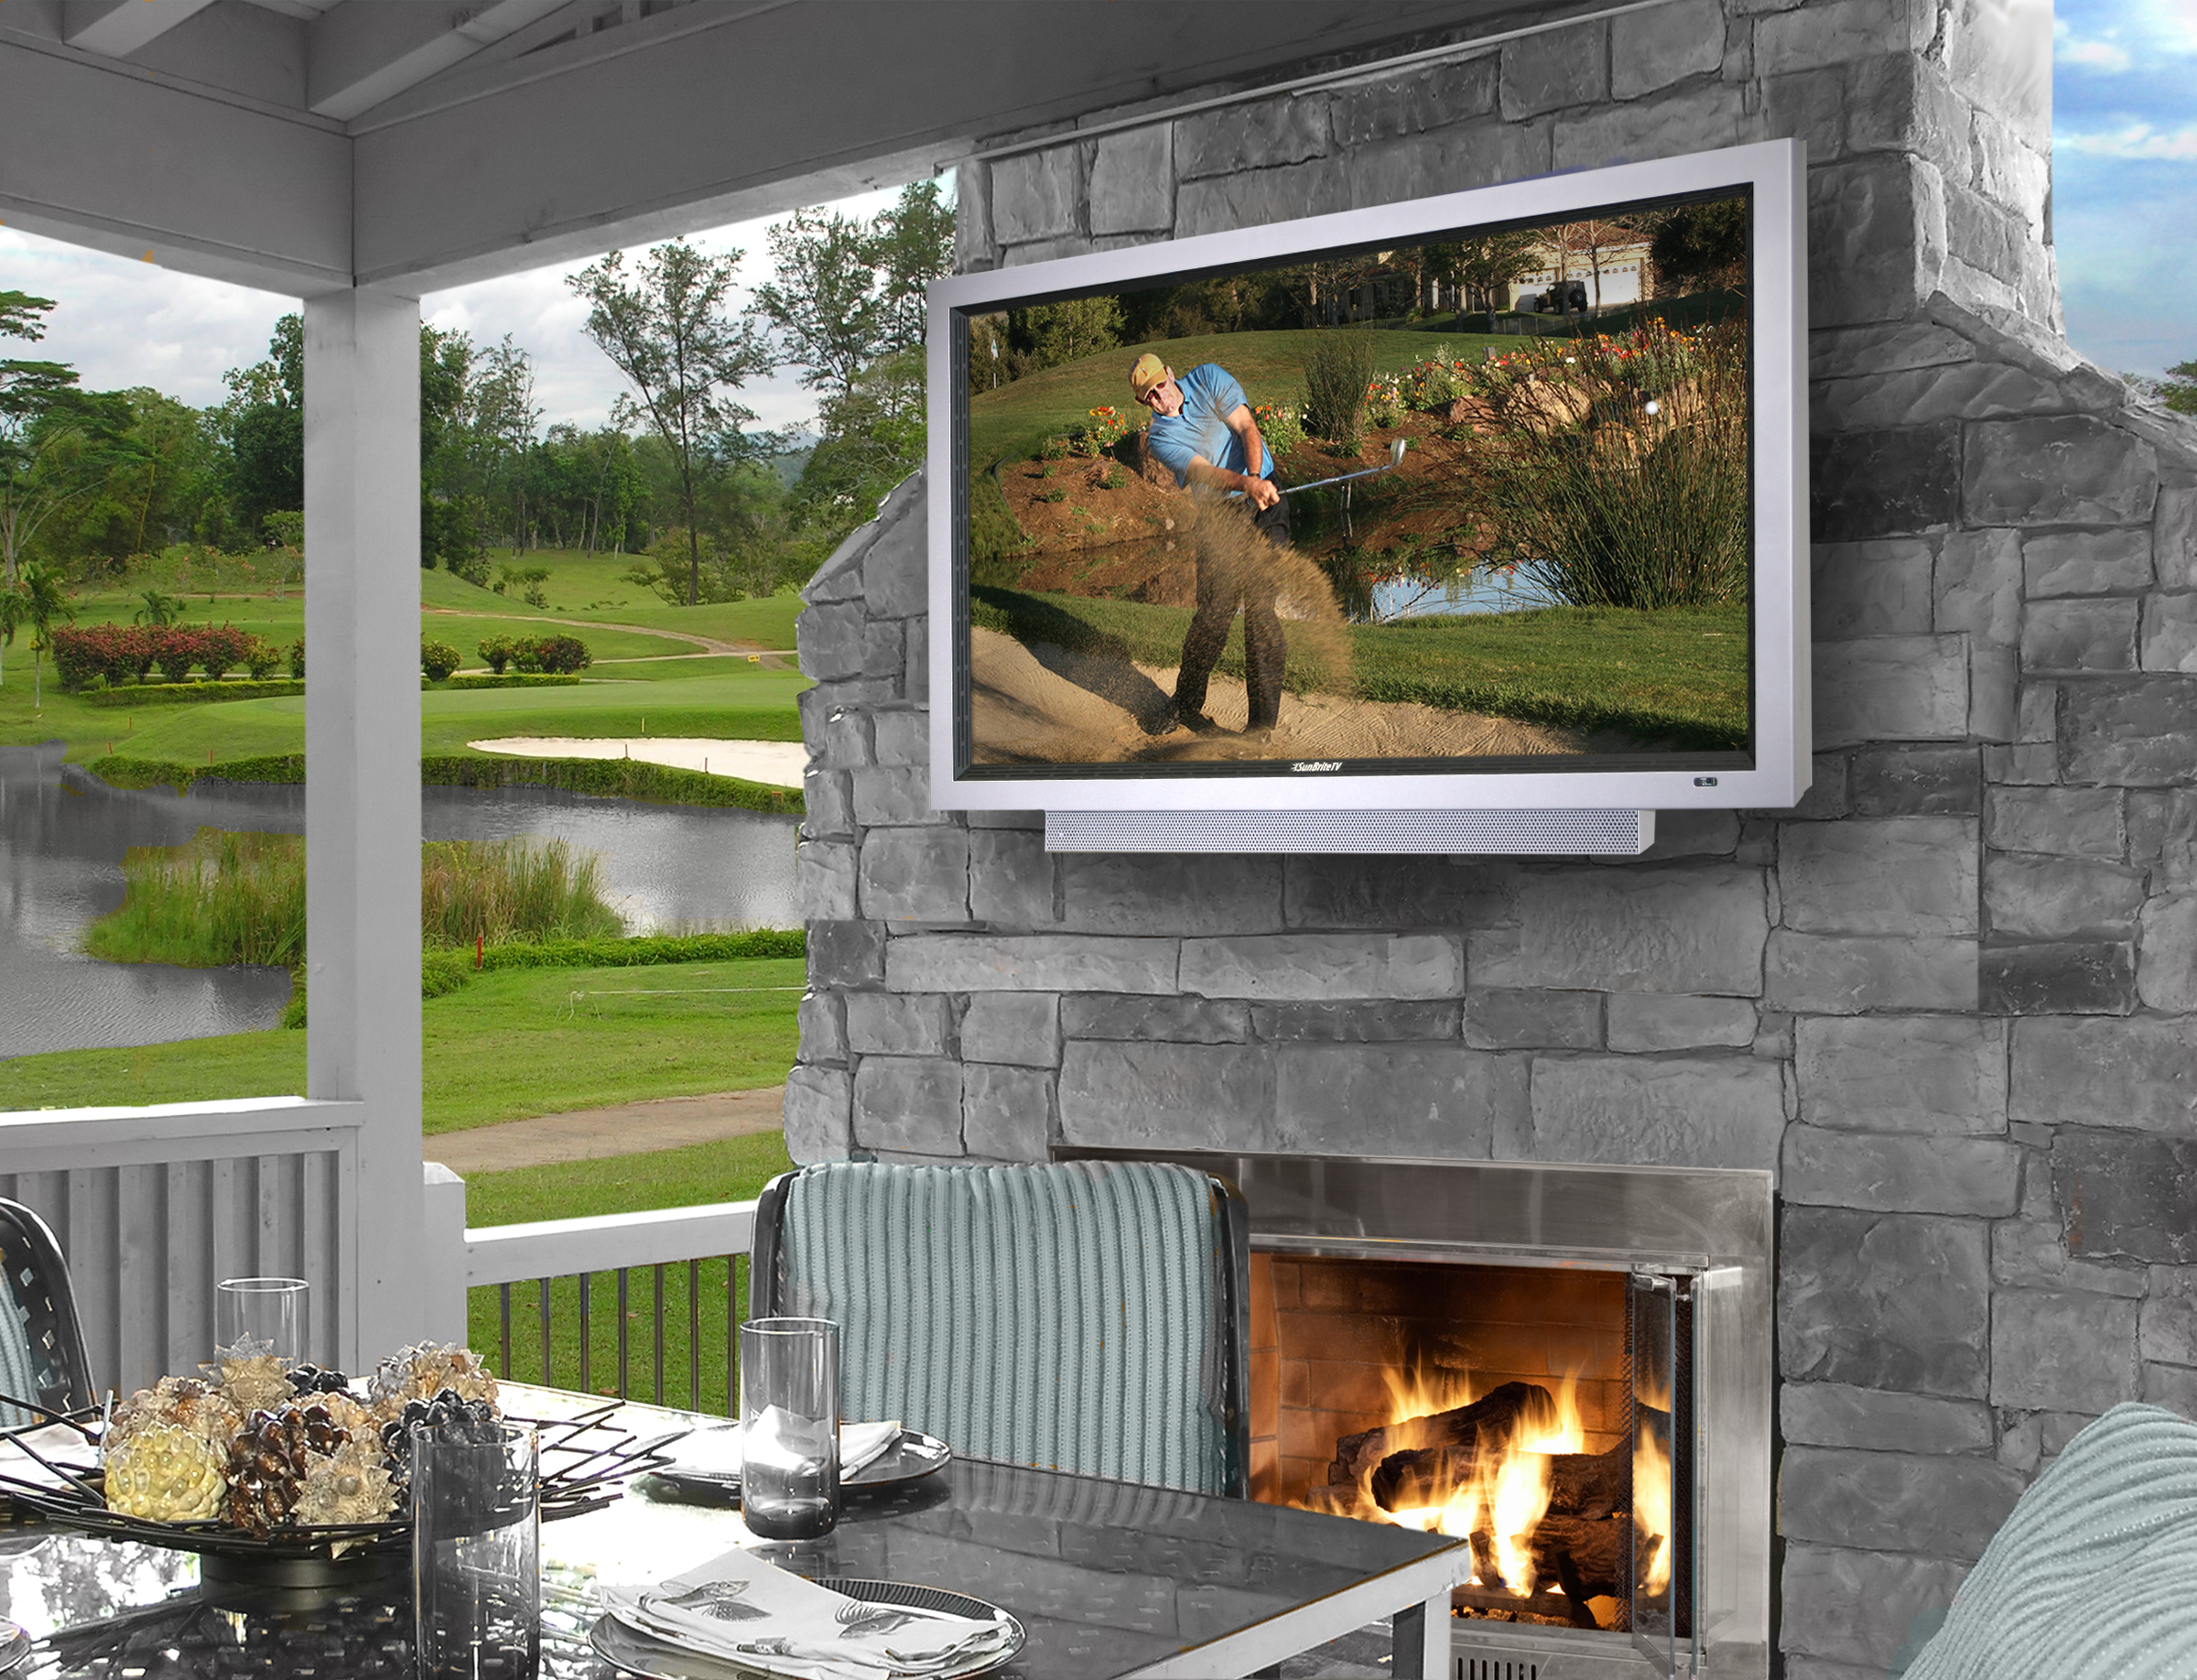 Outdoor tv, https://screamingwifi.com, wifi, wi-fi, internet service, Home audio system, multi-room music system, sonos, casatunes, home speakers, house speakers, house sound system, https://www.automated-lifestyles.com, automated lifestyles, automated lifestyles Moscow pa, automated lifestyles Pennsylvania, home automation, home monitoring, automated home, automatic home, smart home, automatic window blinds, automatic window shades, surveillance camera, home security, business security, office security system, security system, security camera, home theater, home theater design, home theatre, home network, home control, control home ipad, control home iphone, home speakers, Lutron lights, Lutron lighting, Lighting control, automatic lighting, Multi-room music, Whole house music, Speakers, Audio visual, room music, Meeting room av, Meeting room audio visual, meeting room projector, meeting room screen, office projector, conference room, boardroom, automated meeting room, automatic meeting room, Window candles